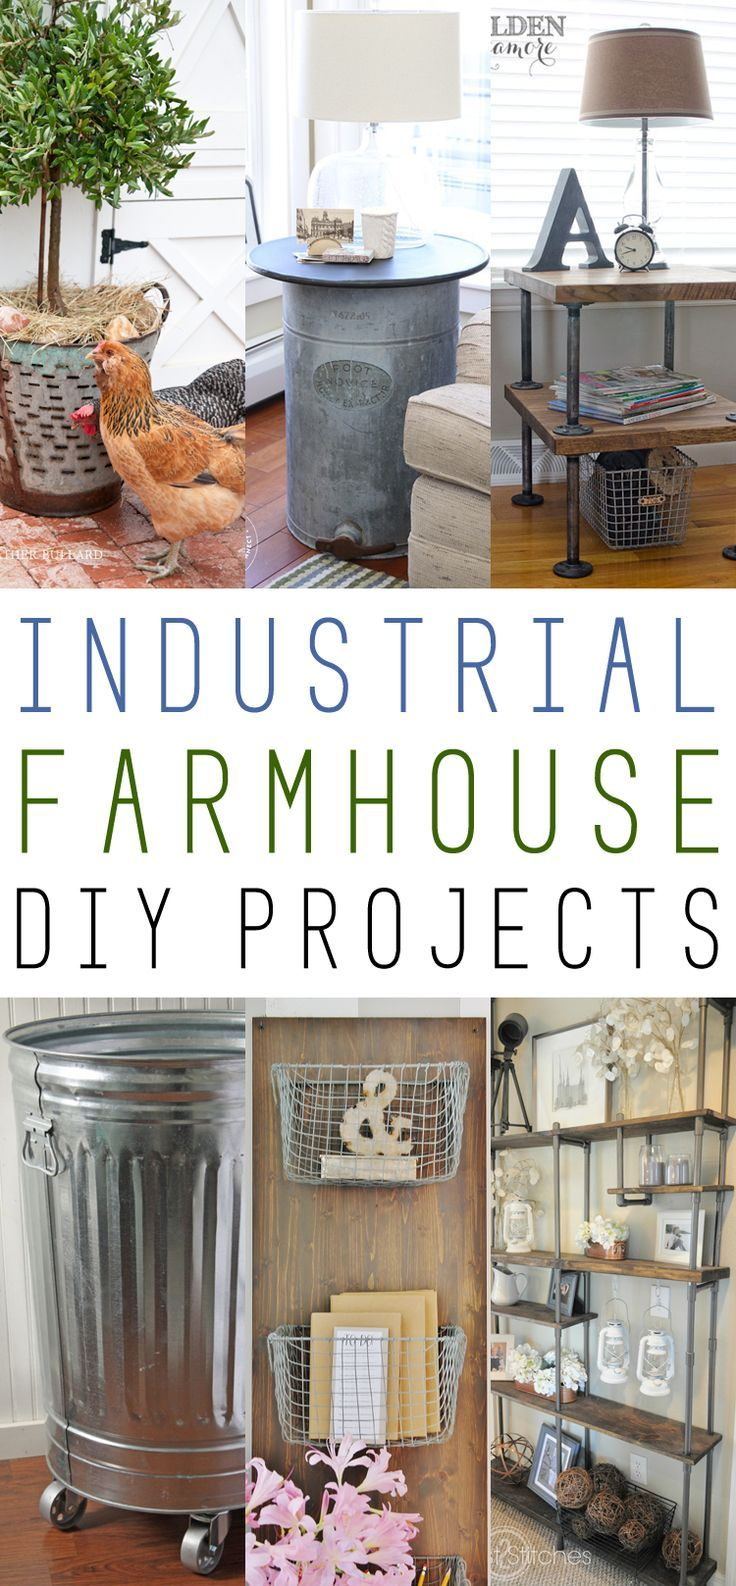 Farmhouse Fridays /// Industrial Farmhouse DIY Projects - The Cottage Market